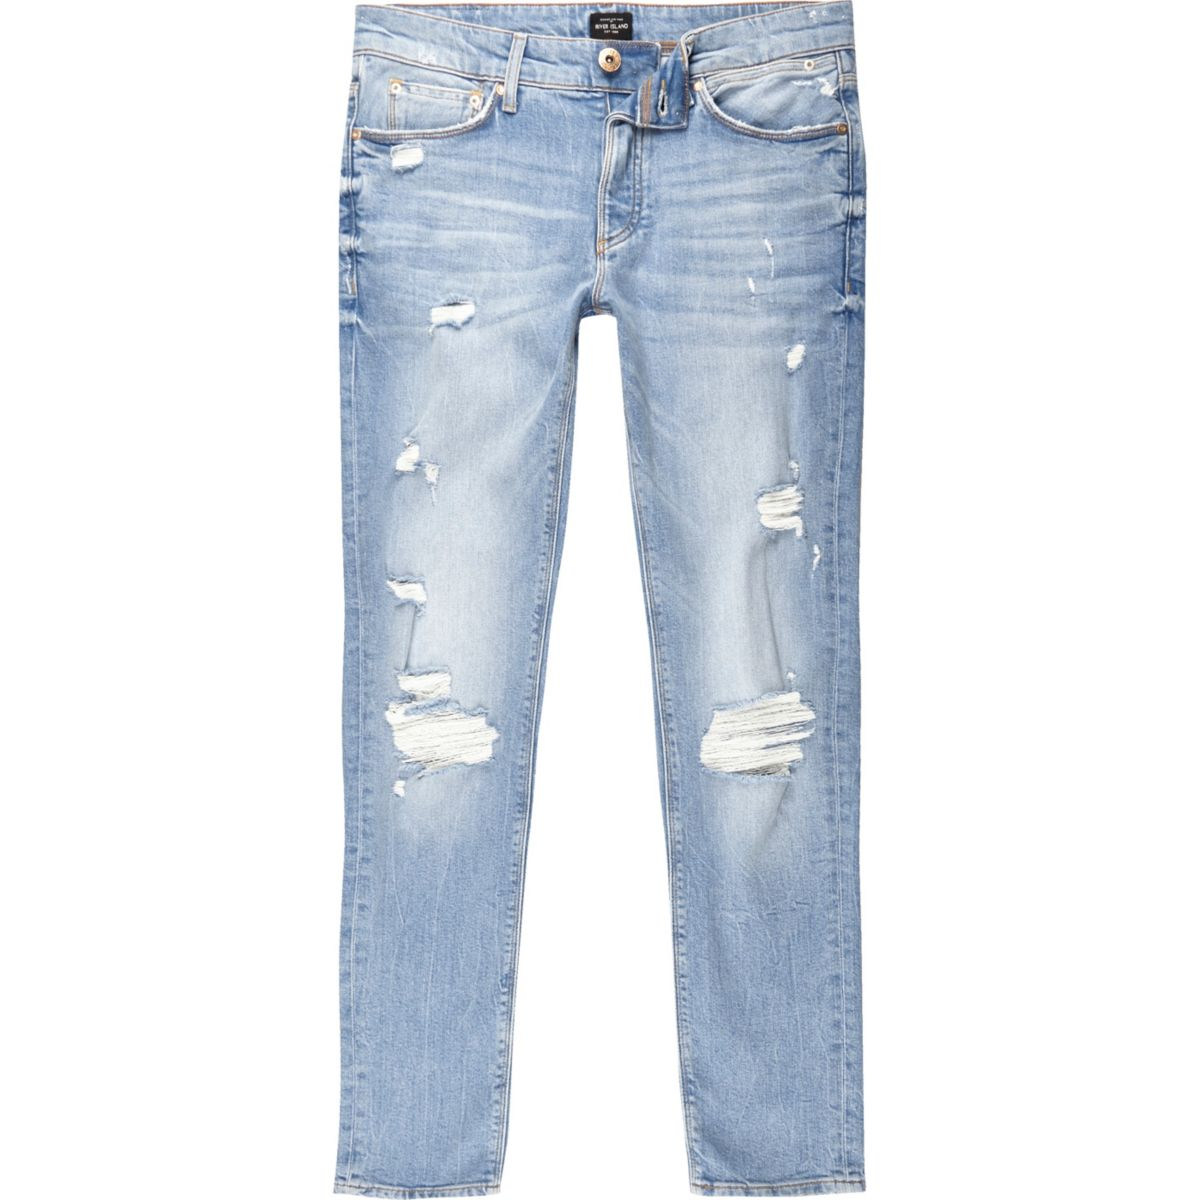 Stay cool, fresh and comfortable in light wash jeans for men from Gap. Gap's selection of light wash denim offers versatile pairs that are perfect for a stylish man's casual wardrobe. Browse a range of jeans with varying light shades, sizes, cuts and styles to find your perfect pair, or pairs.